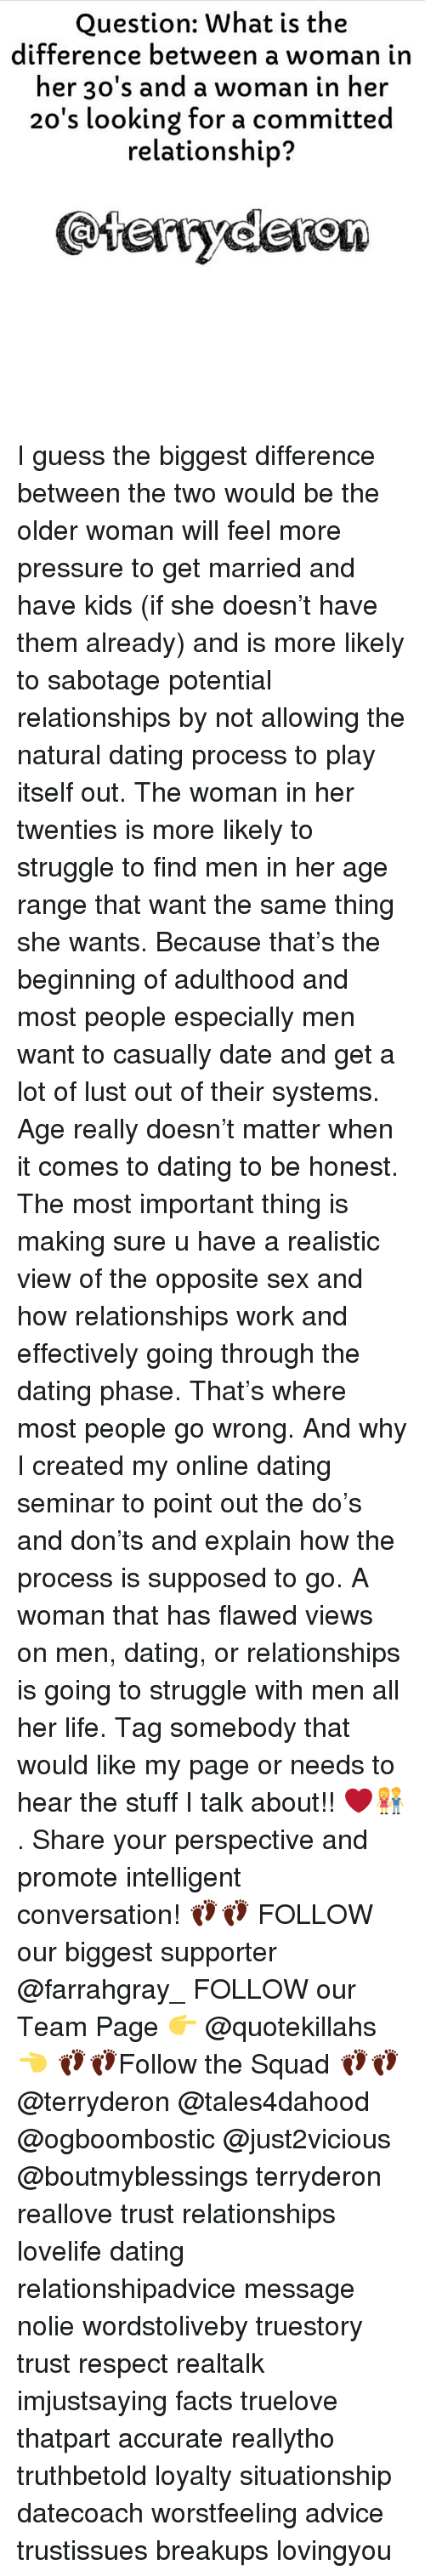 Dating two online people feels wrong